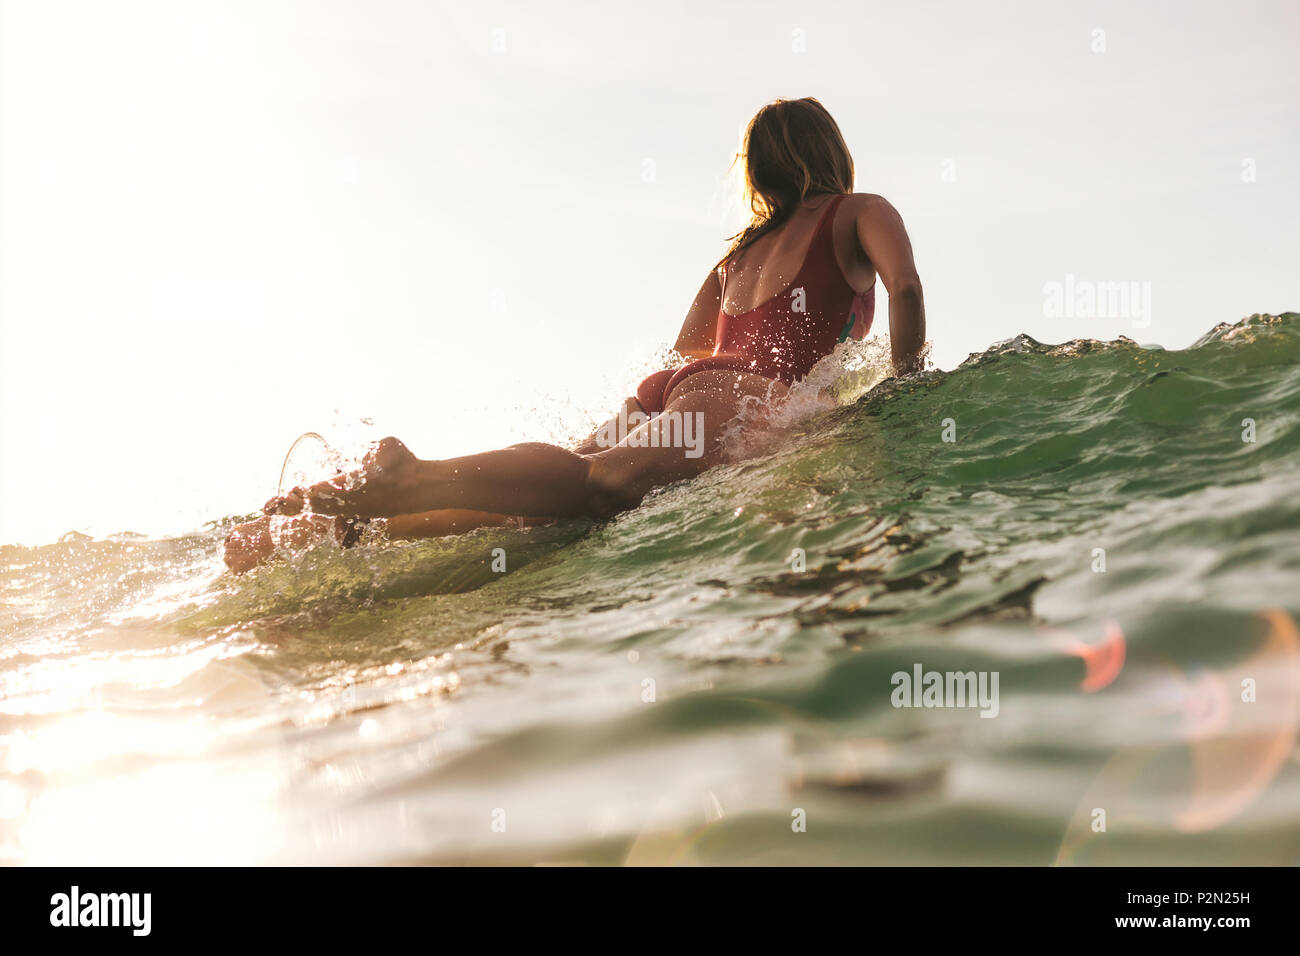 back view of woman in swimming suit surfing in ocean - Stock Image